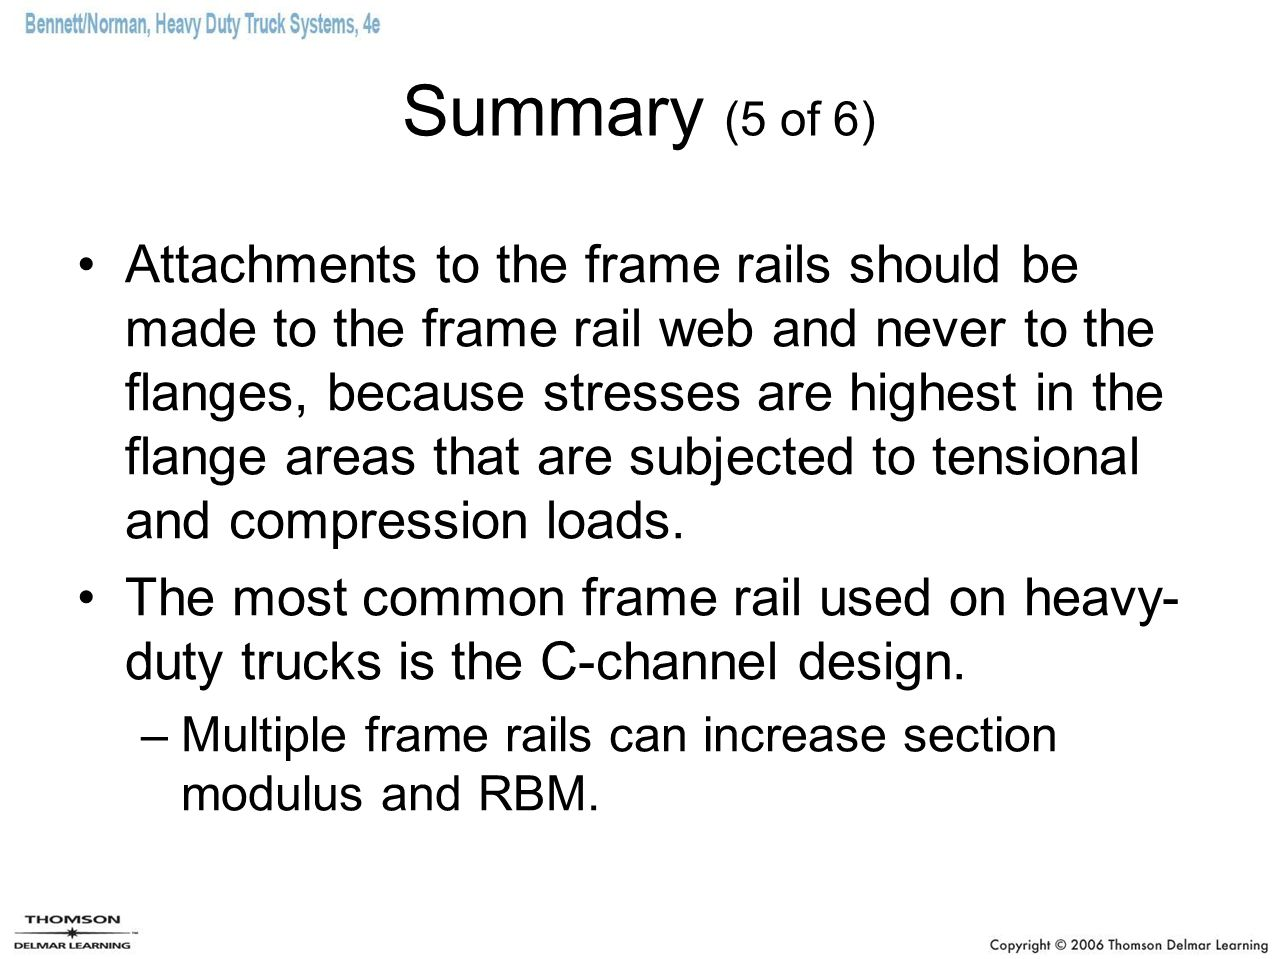 Summary (5 of 6) Attachments to the frame rails should be made to the frame rail web and never to the flanges, because stresses are highest in the fla